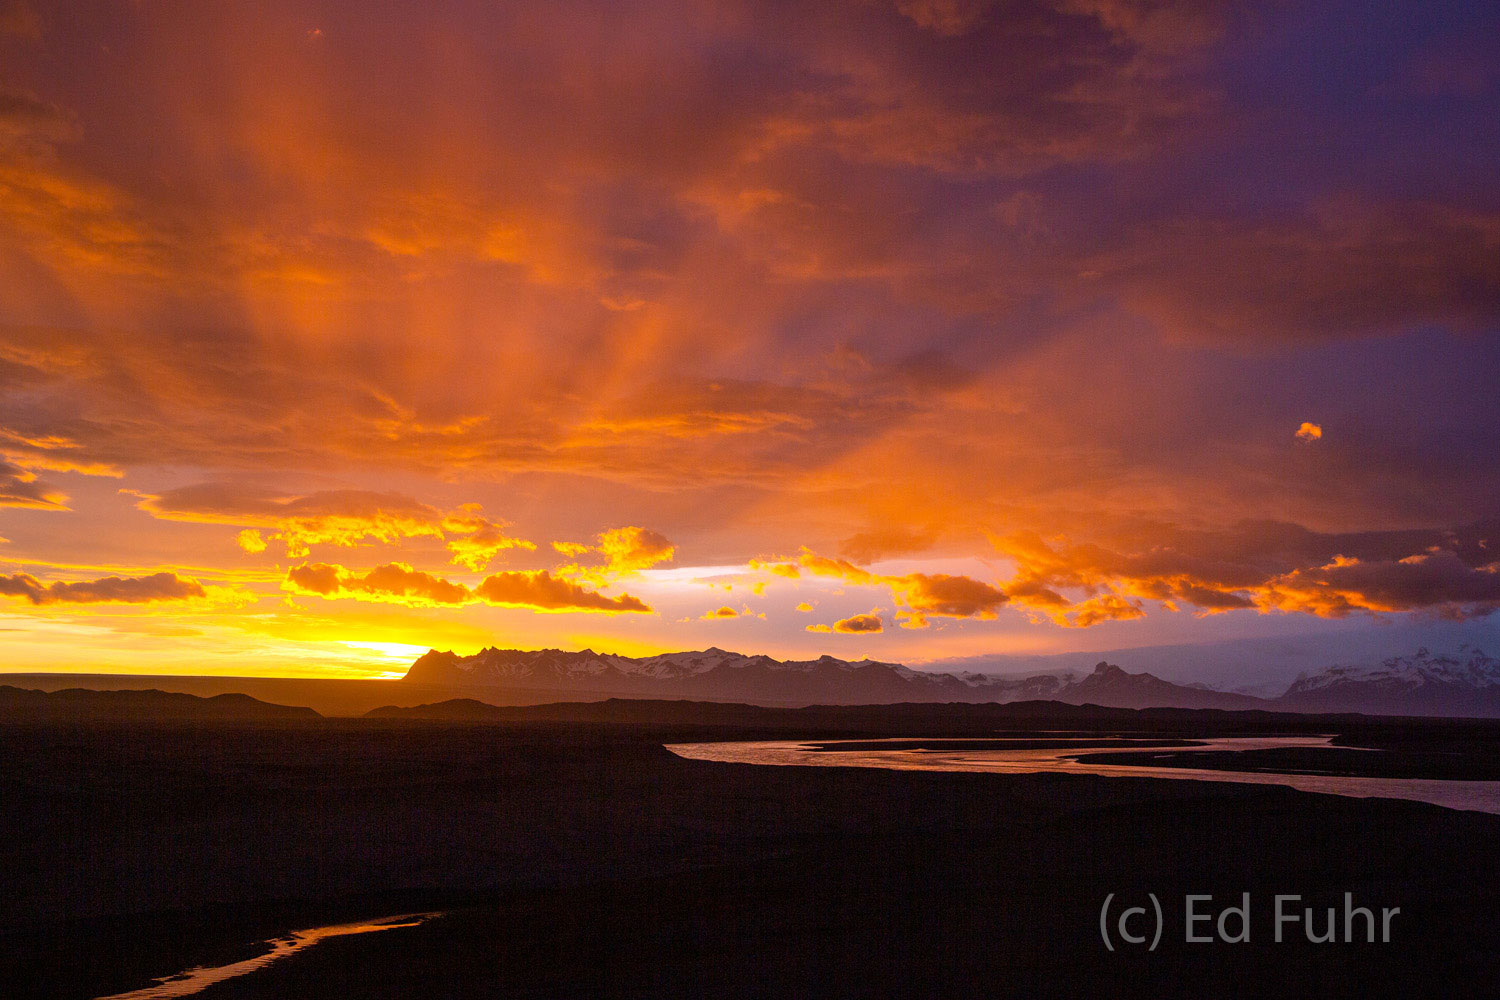 In midsummer, sunrises and sunsets last hours.  Here a 3:00 a.m.  spectacular sunrise bursts on the Iceland horizon.